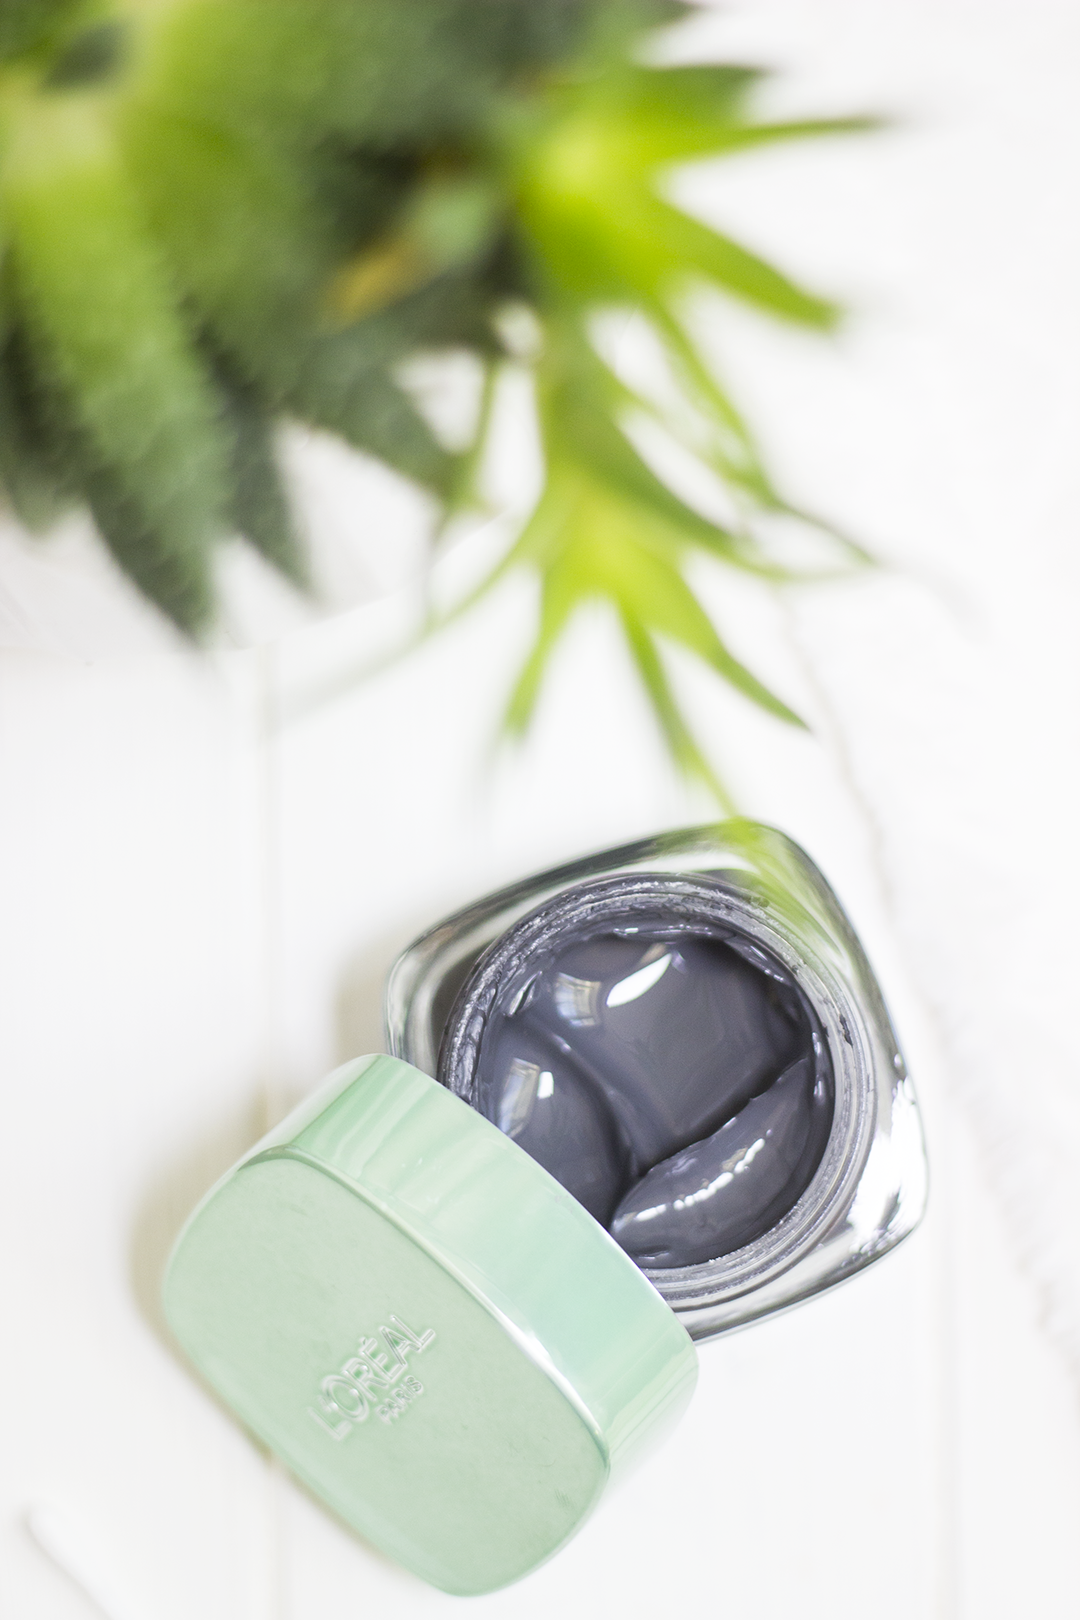 Skincare Heroes L'Oreal Pure Clay Detox Mask